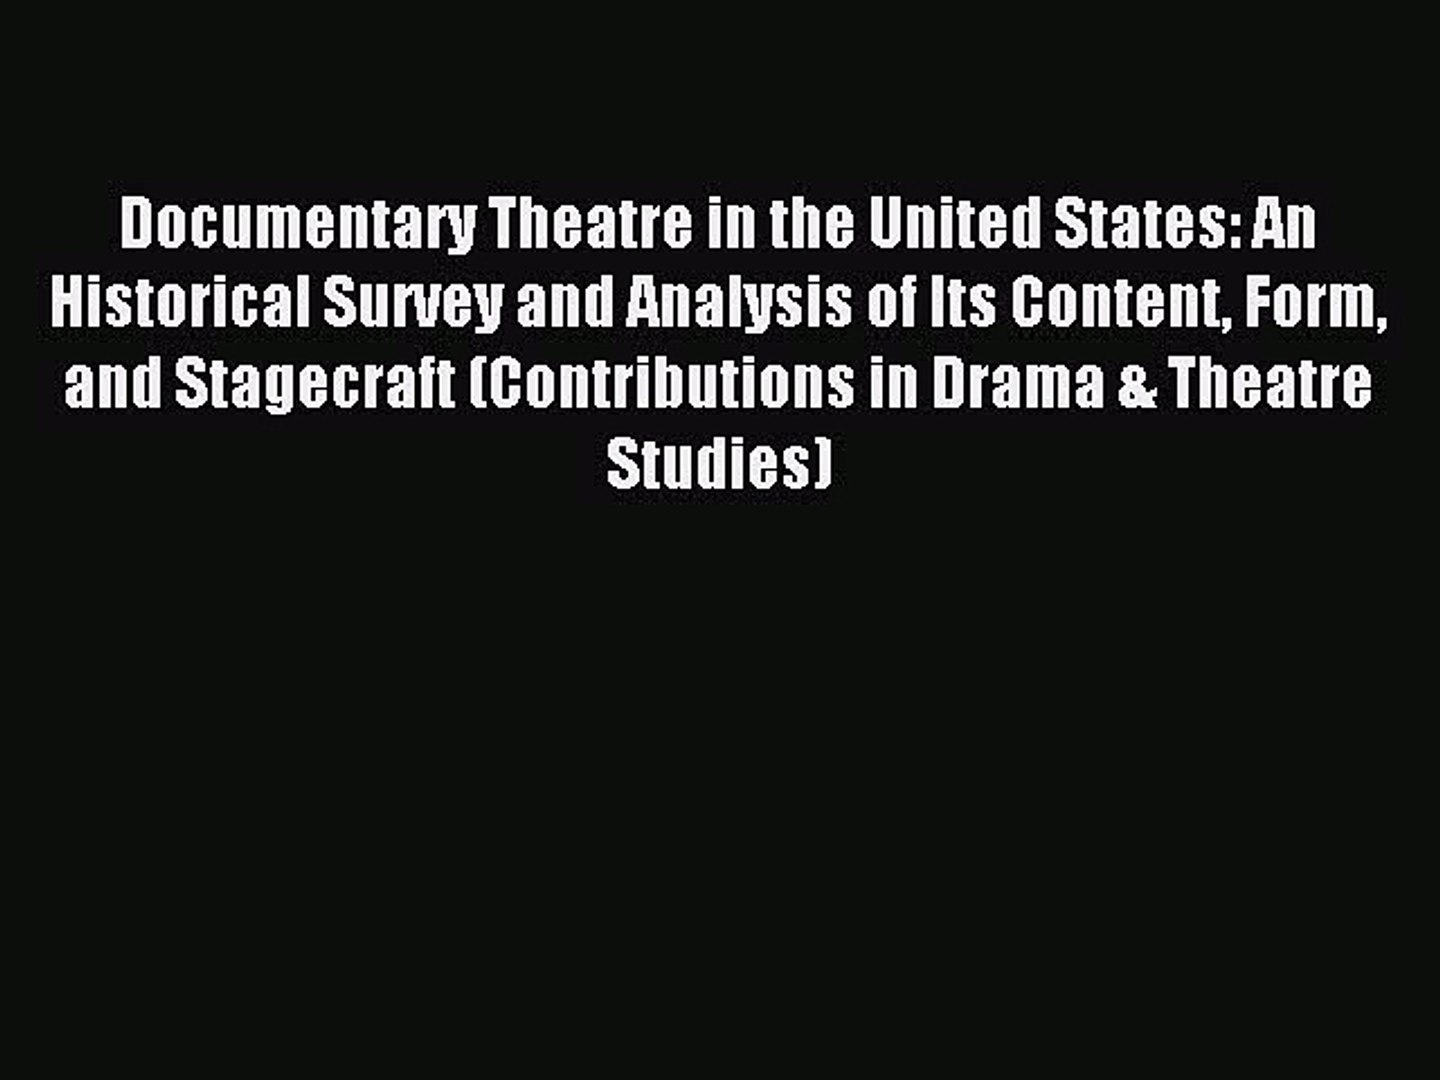 Read Documentary Theatre in the United States: An Historical Survey and Analysis of Its Content